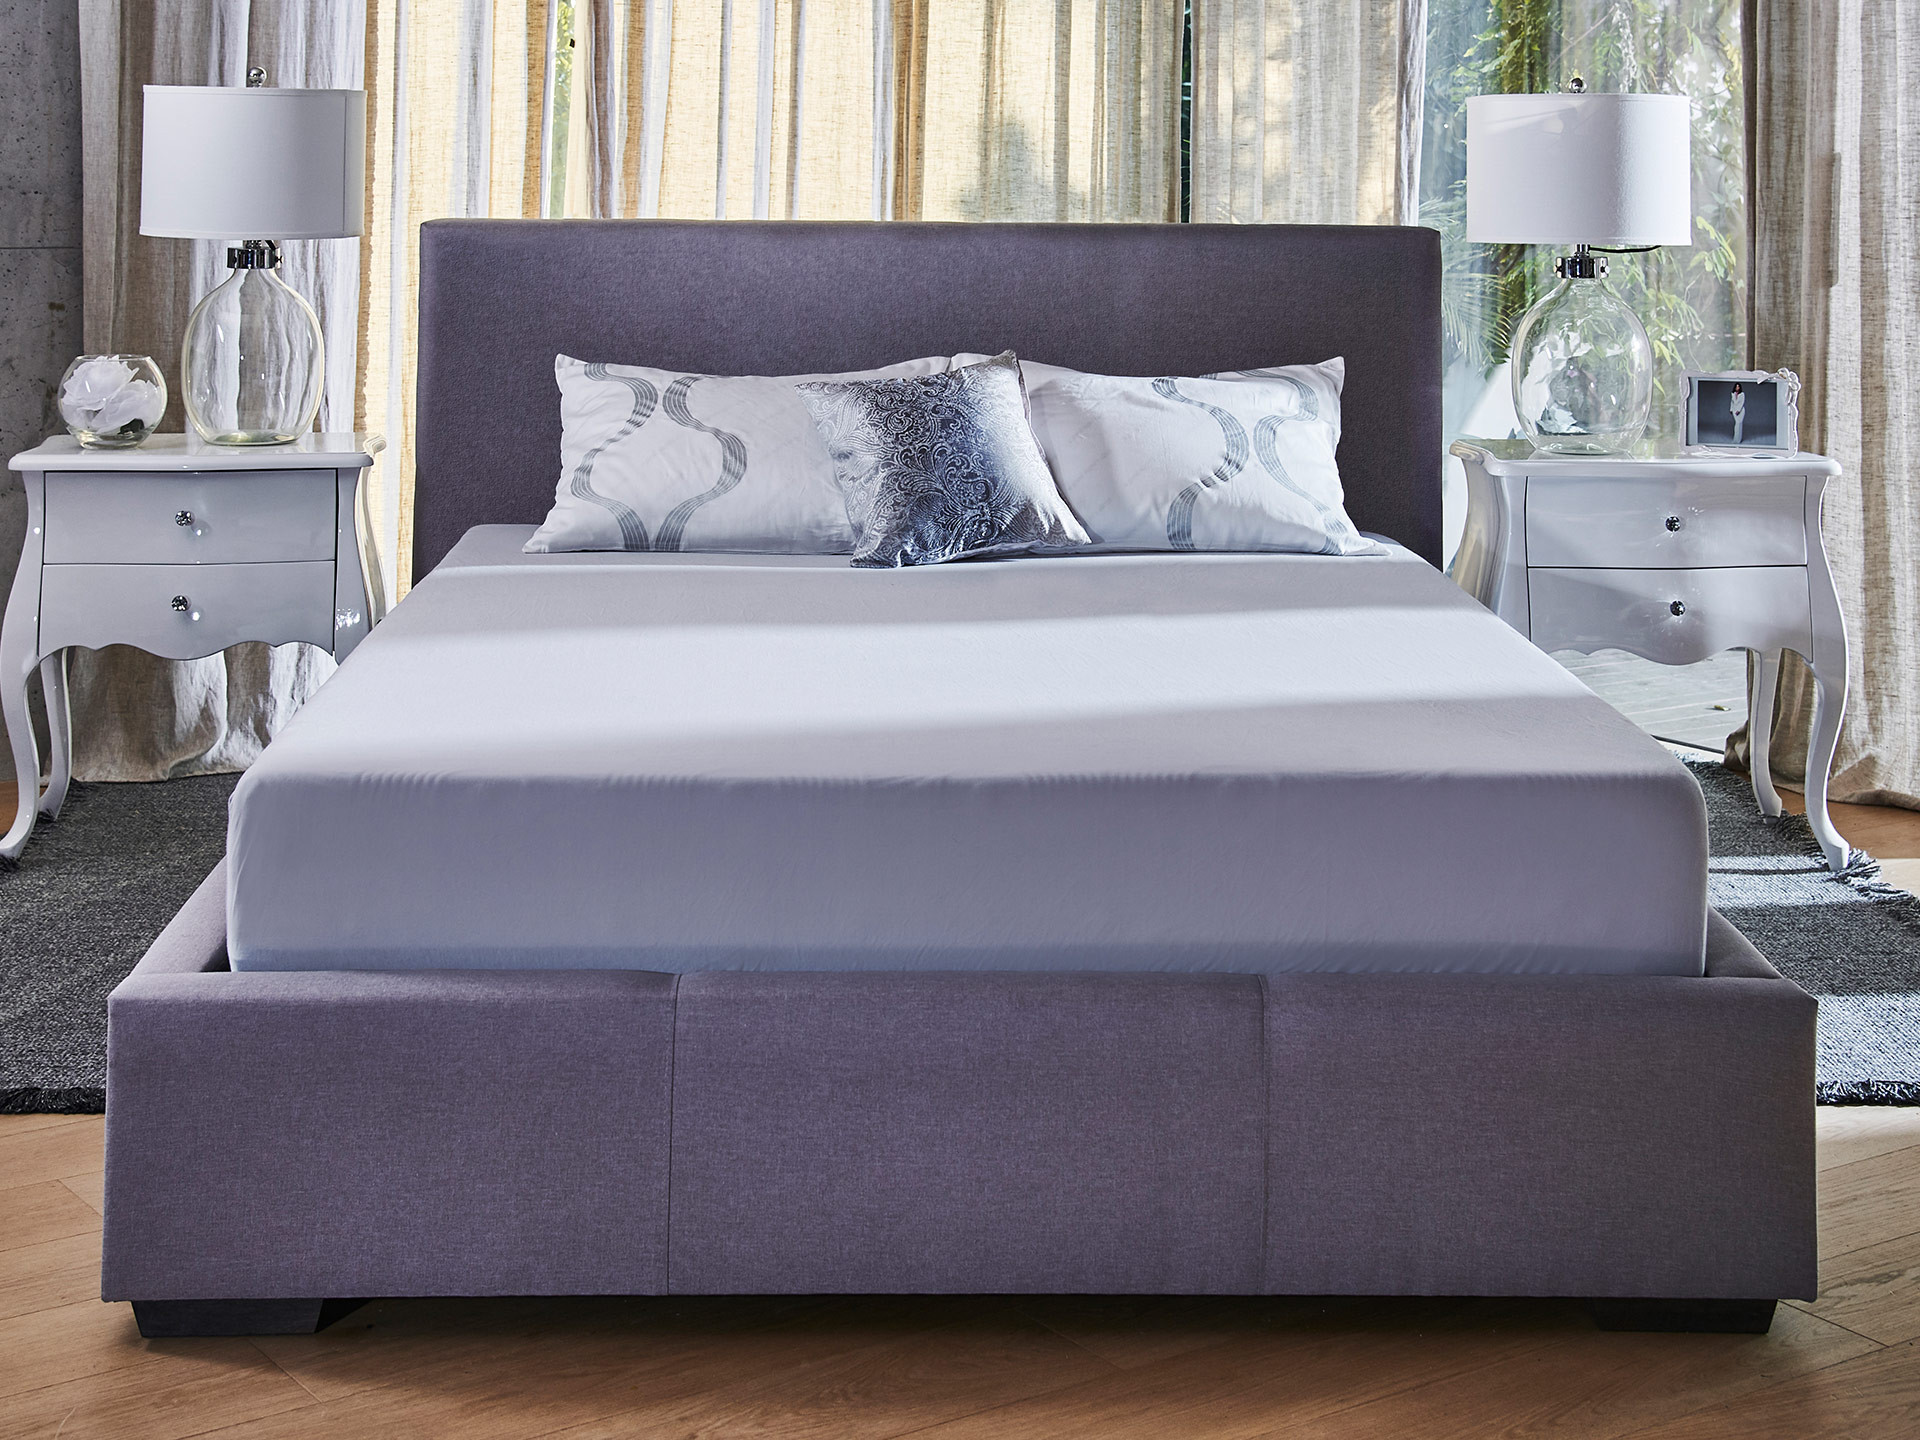 The Impression Of Dormeo Mattress In your Prospects/Followers